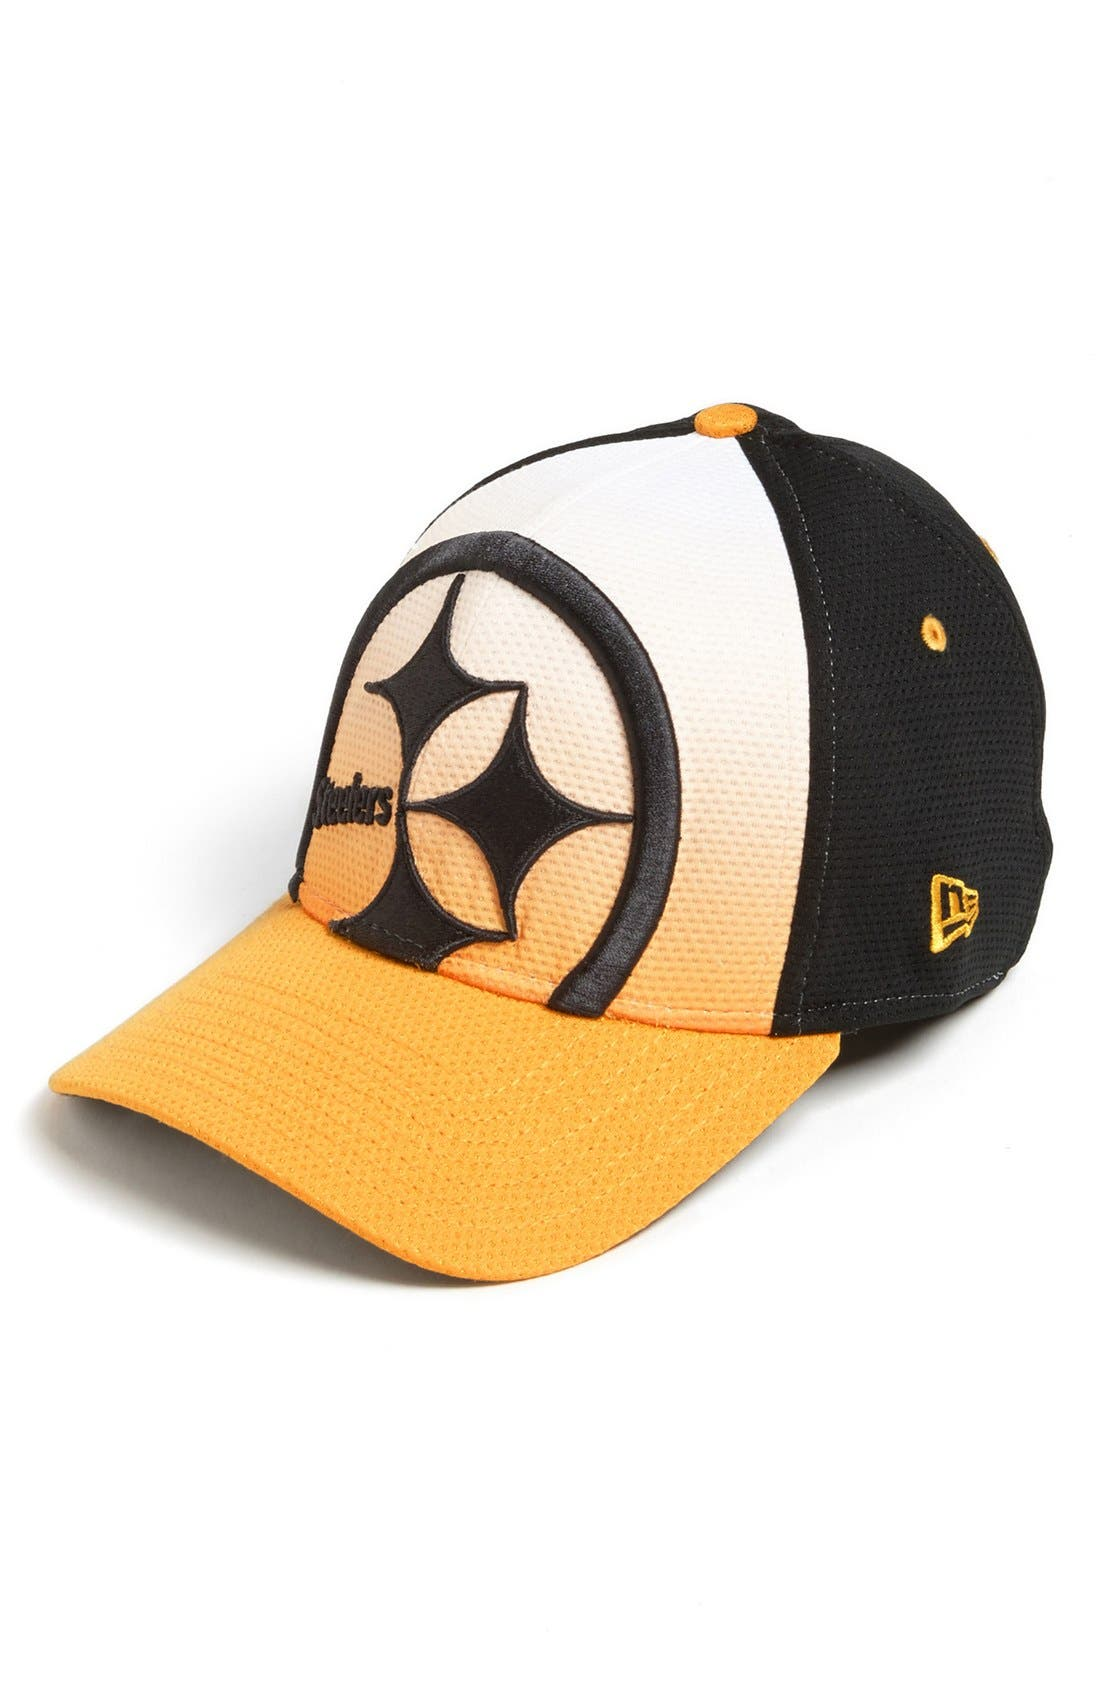 Main Image - New Era Cap 'Gradation - Pittsburgh Steelers' Baseball Cap